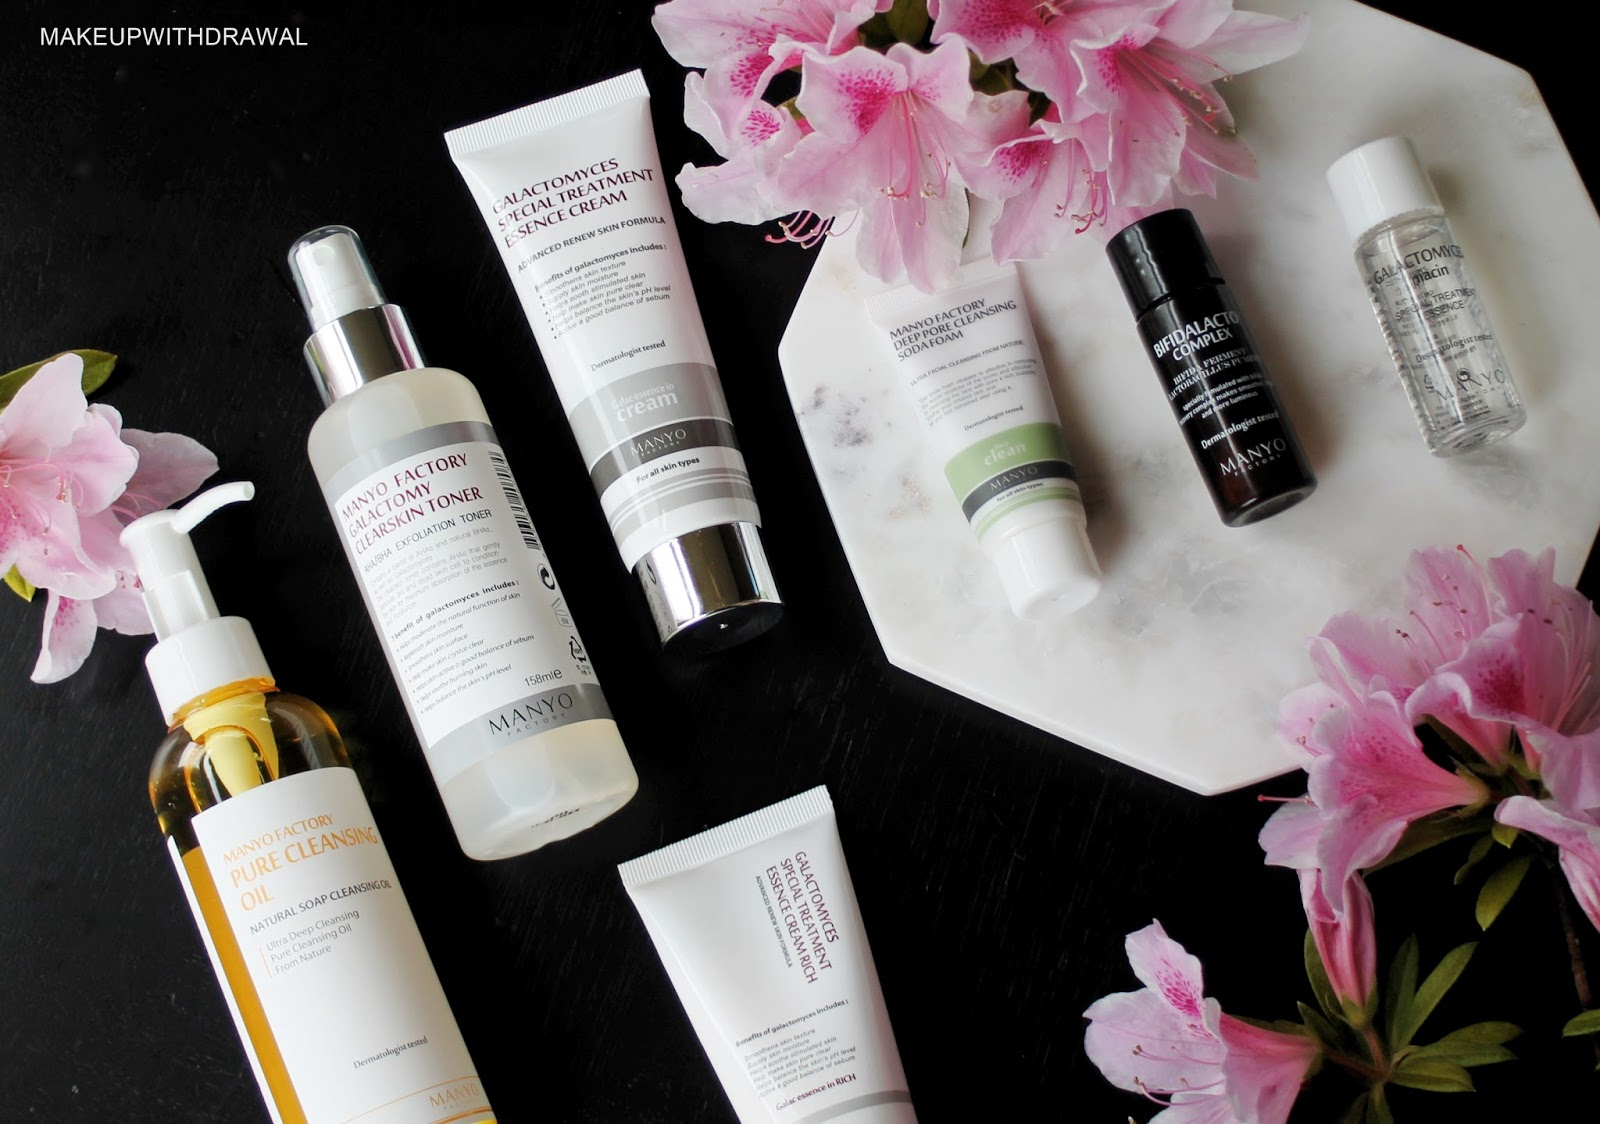 Manyo Factory An Overview Of My Favorite Skincare Brand Makeup Pureheals Galactomyces 90 Ampoule 30ml